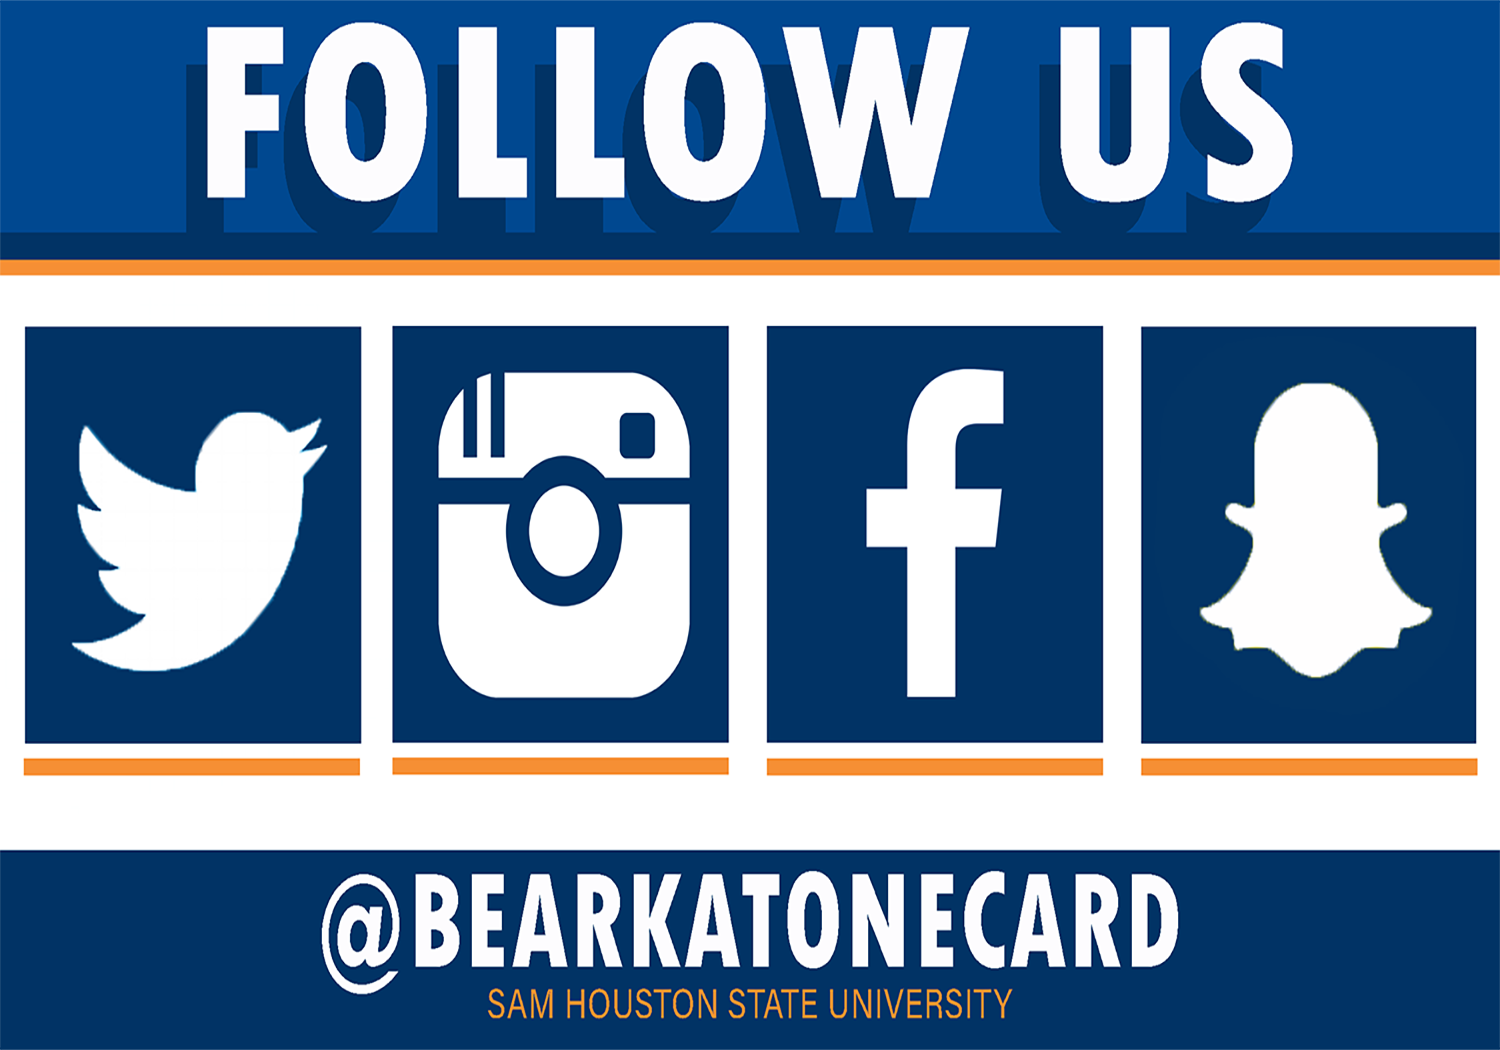 Follow us on Twitter, Instagram, Facebook and Snapchat @Bearkatonecard